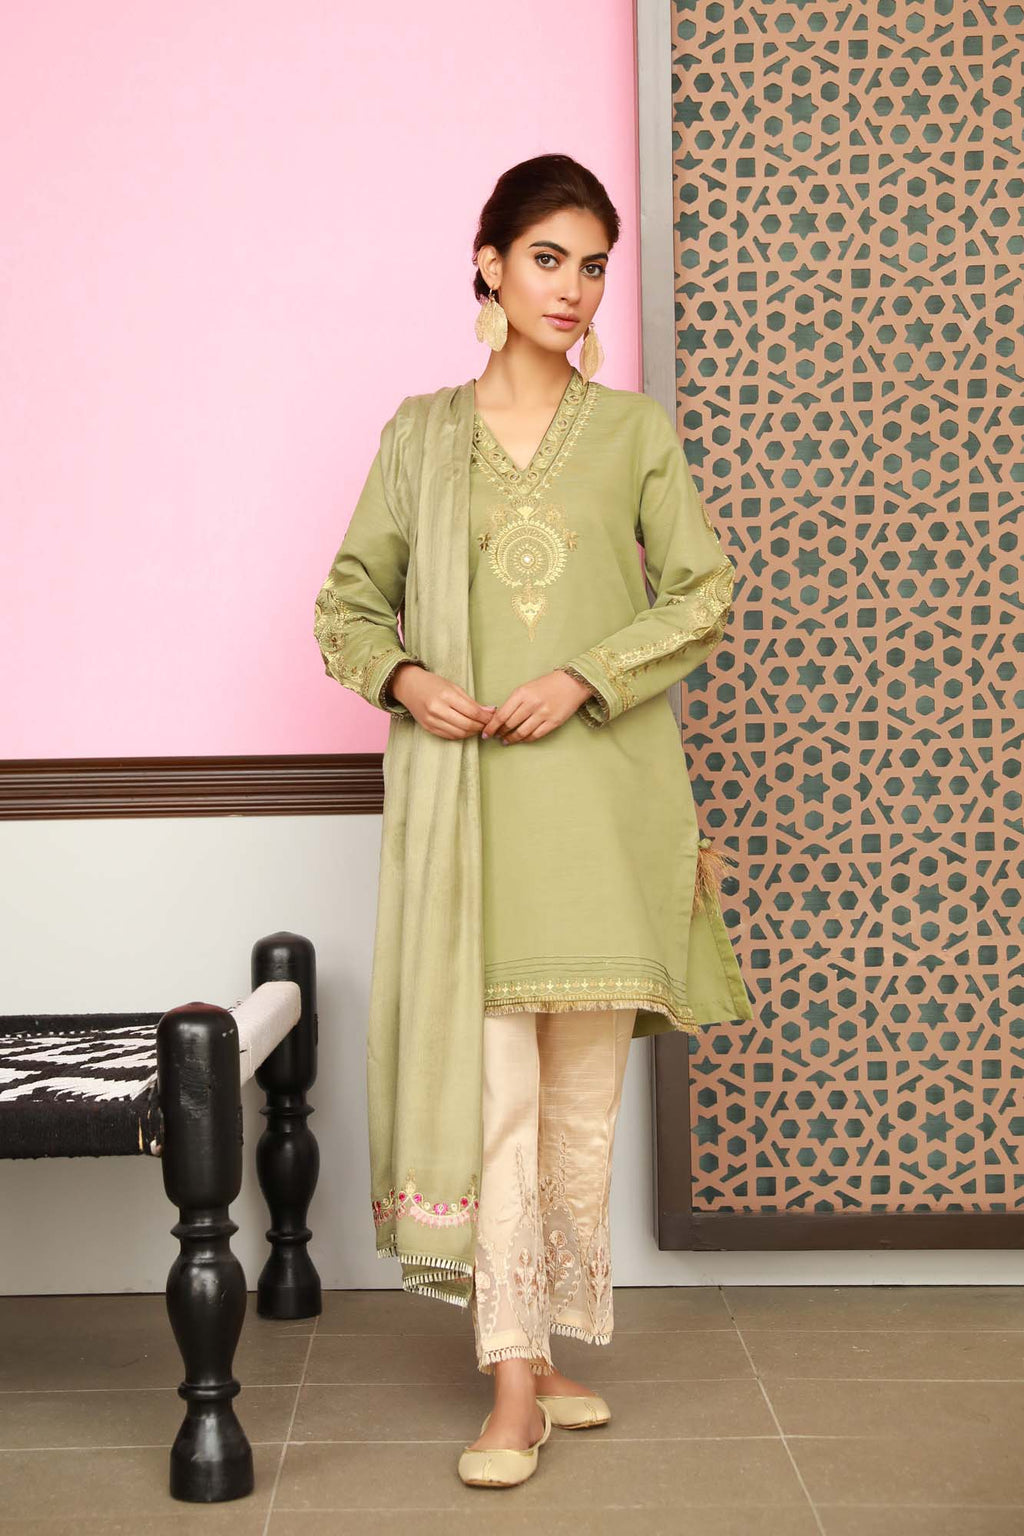 Boutique Suits (Shirt + Shawl) - Ethnic by Outfitters